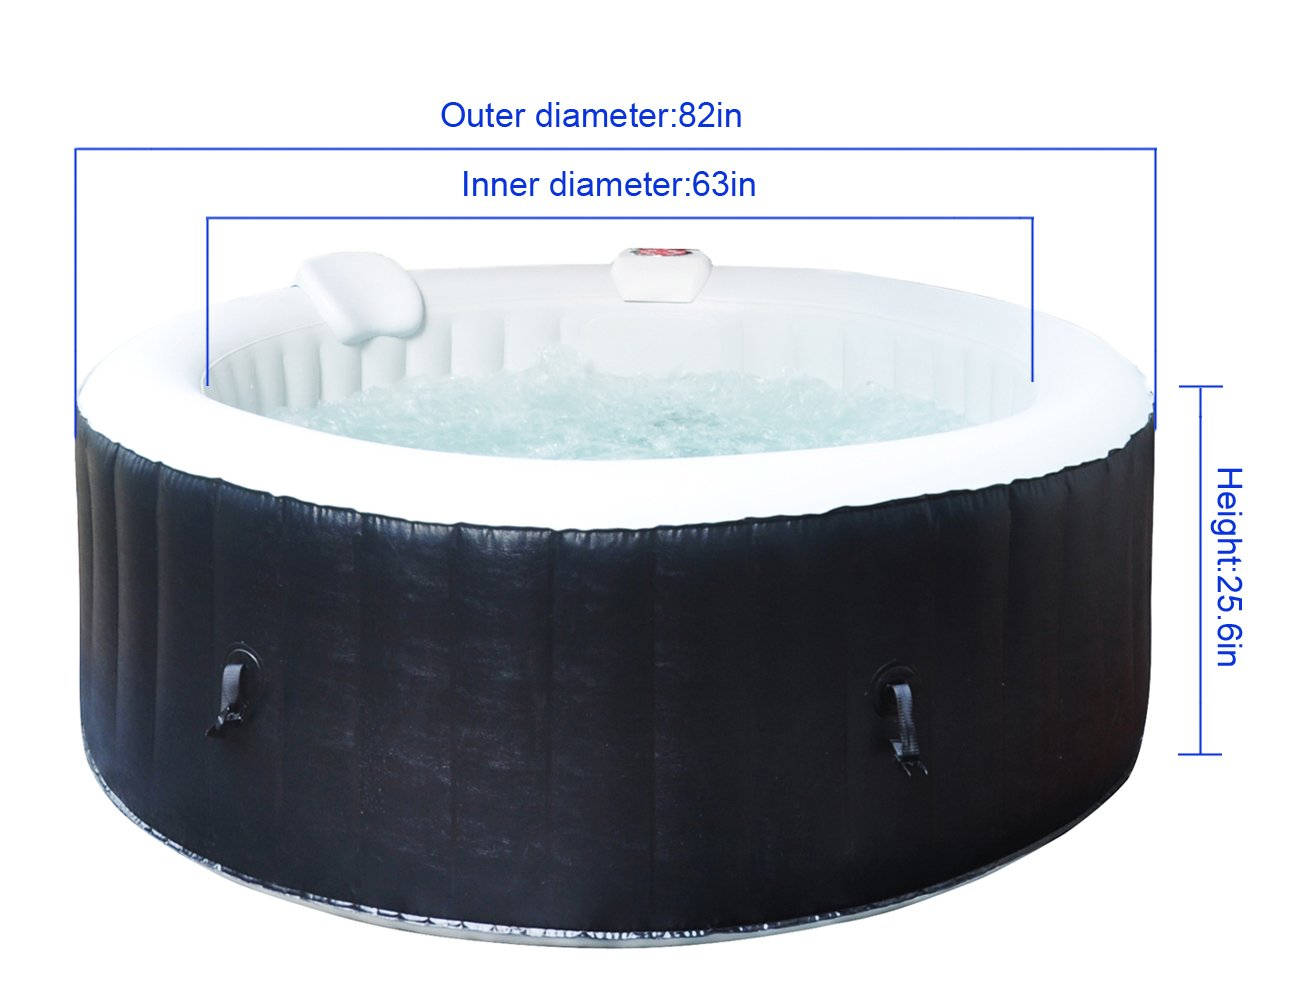 Homax Inflatable 264 Gallons(1000 Liter) SPA 6-Person 130 Air Jets Include Accessories Round Portable Hot Tub SPA Easy Plug N Play, Black/Light Grey